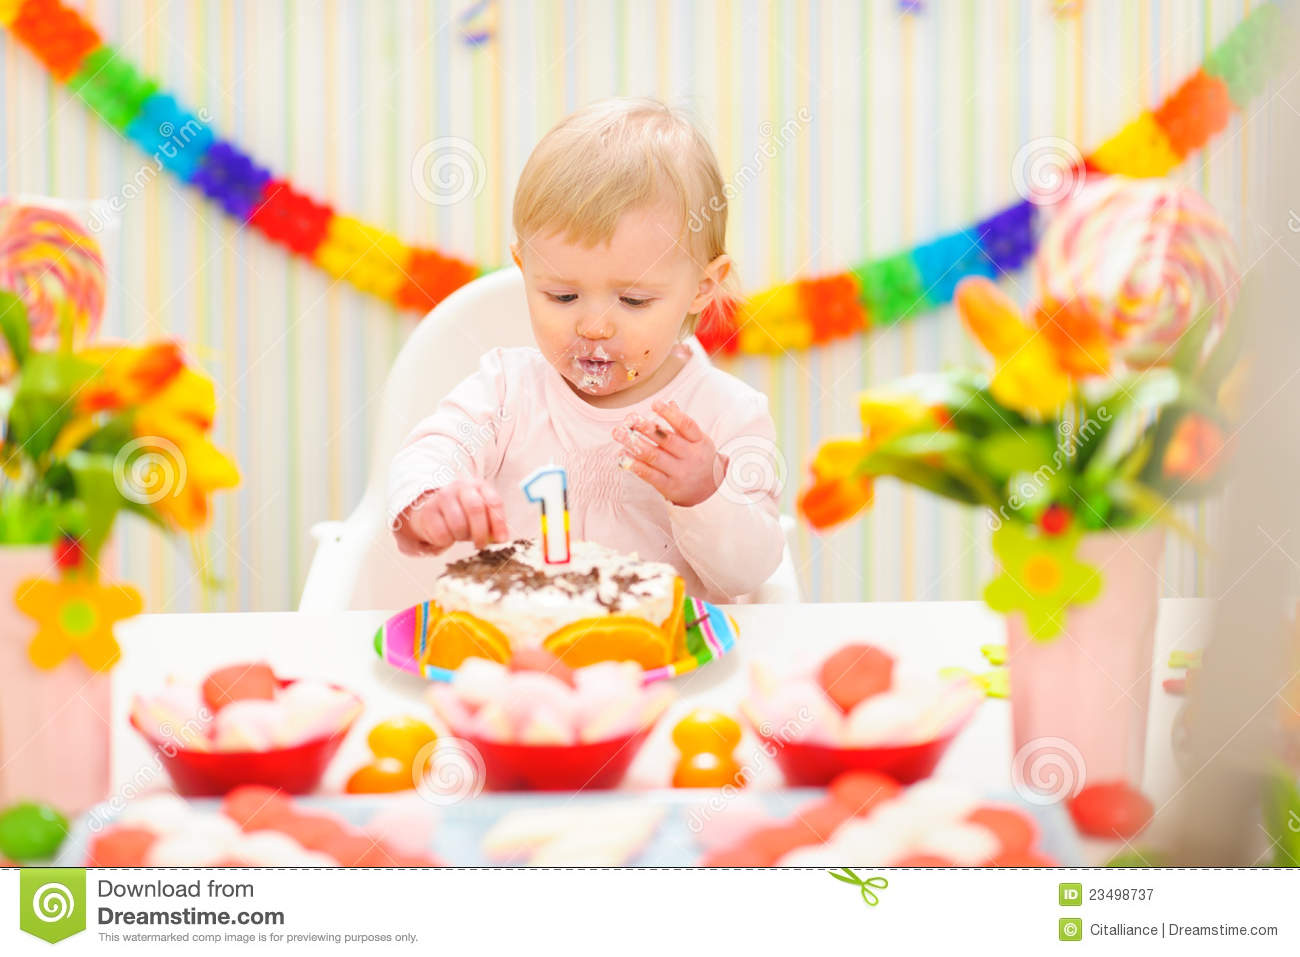 Happy Birthday Baby Eating Cake Baby Eating Birthday Cake